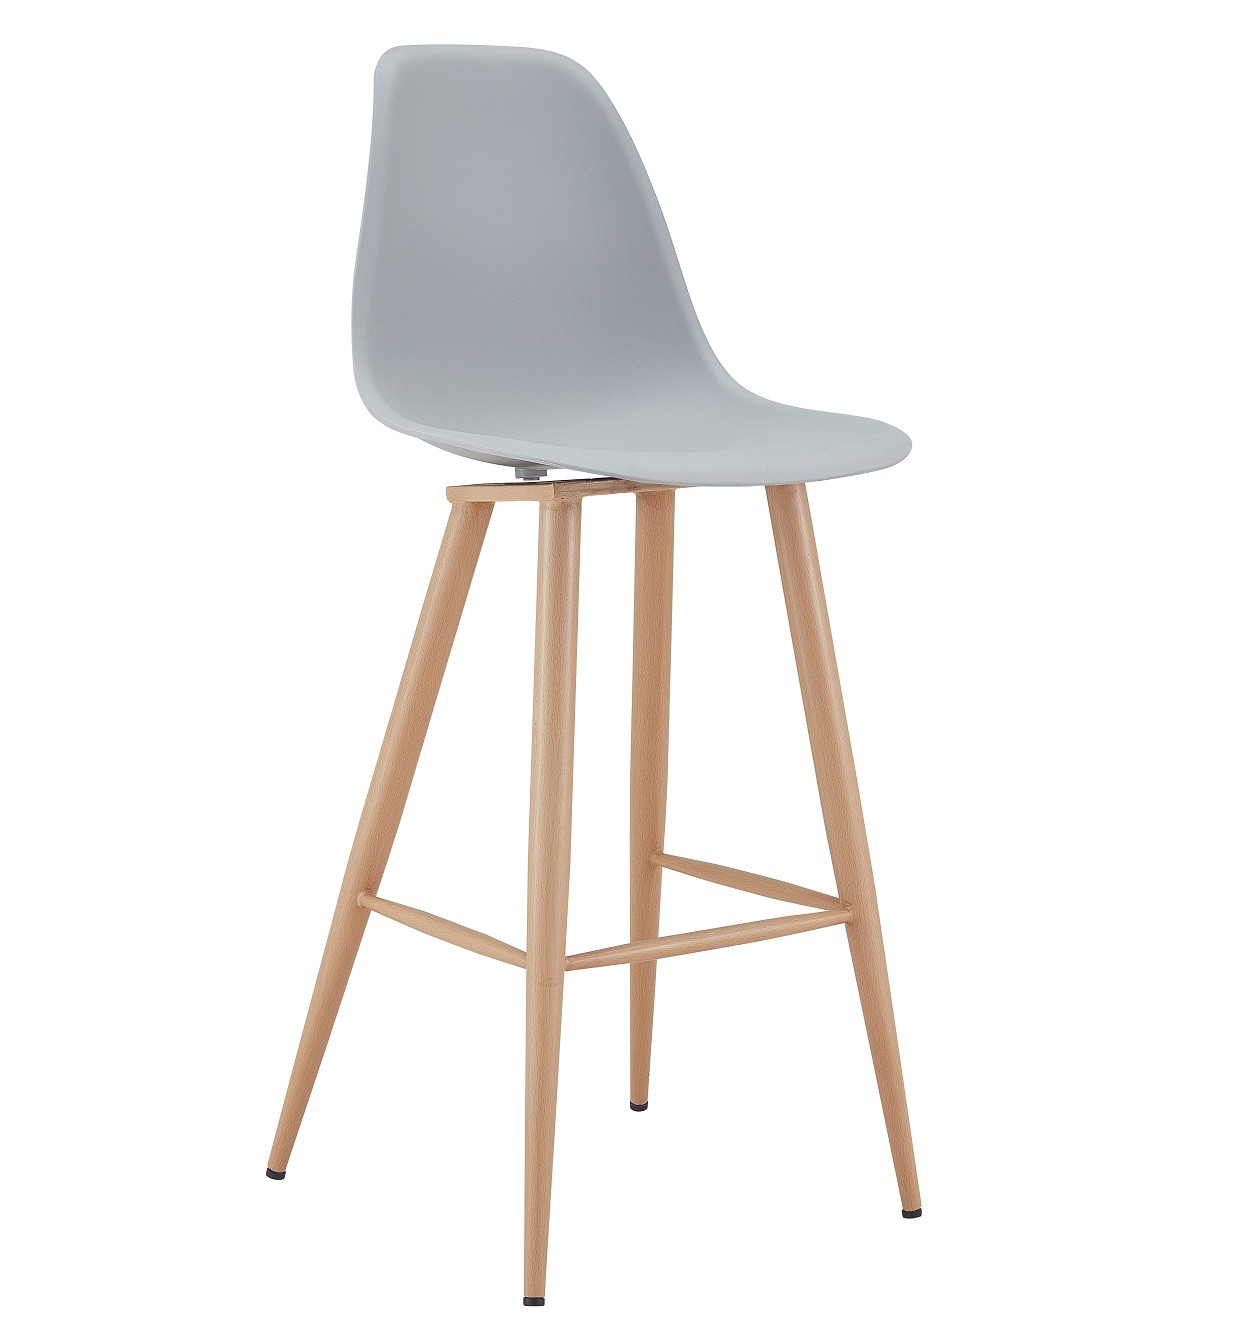 Stool CLUNY, Metal Wood Color, Polypropylene Gray